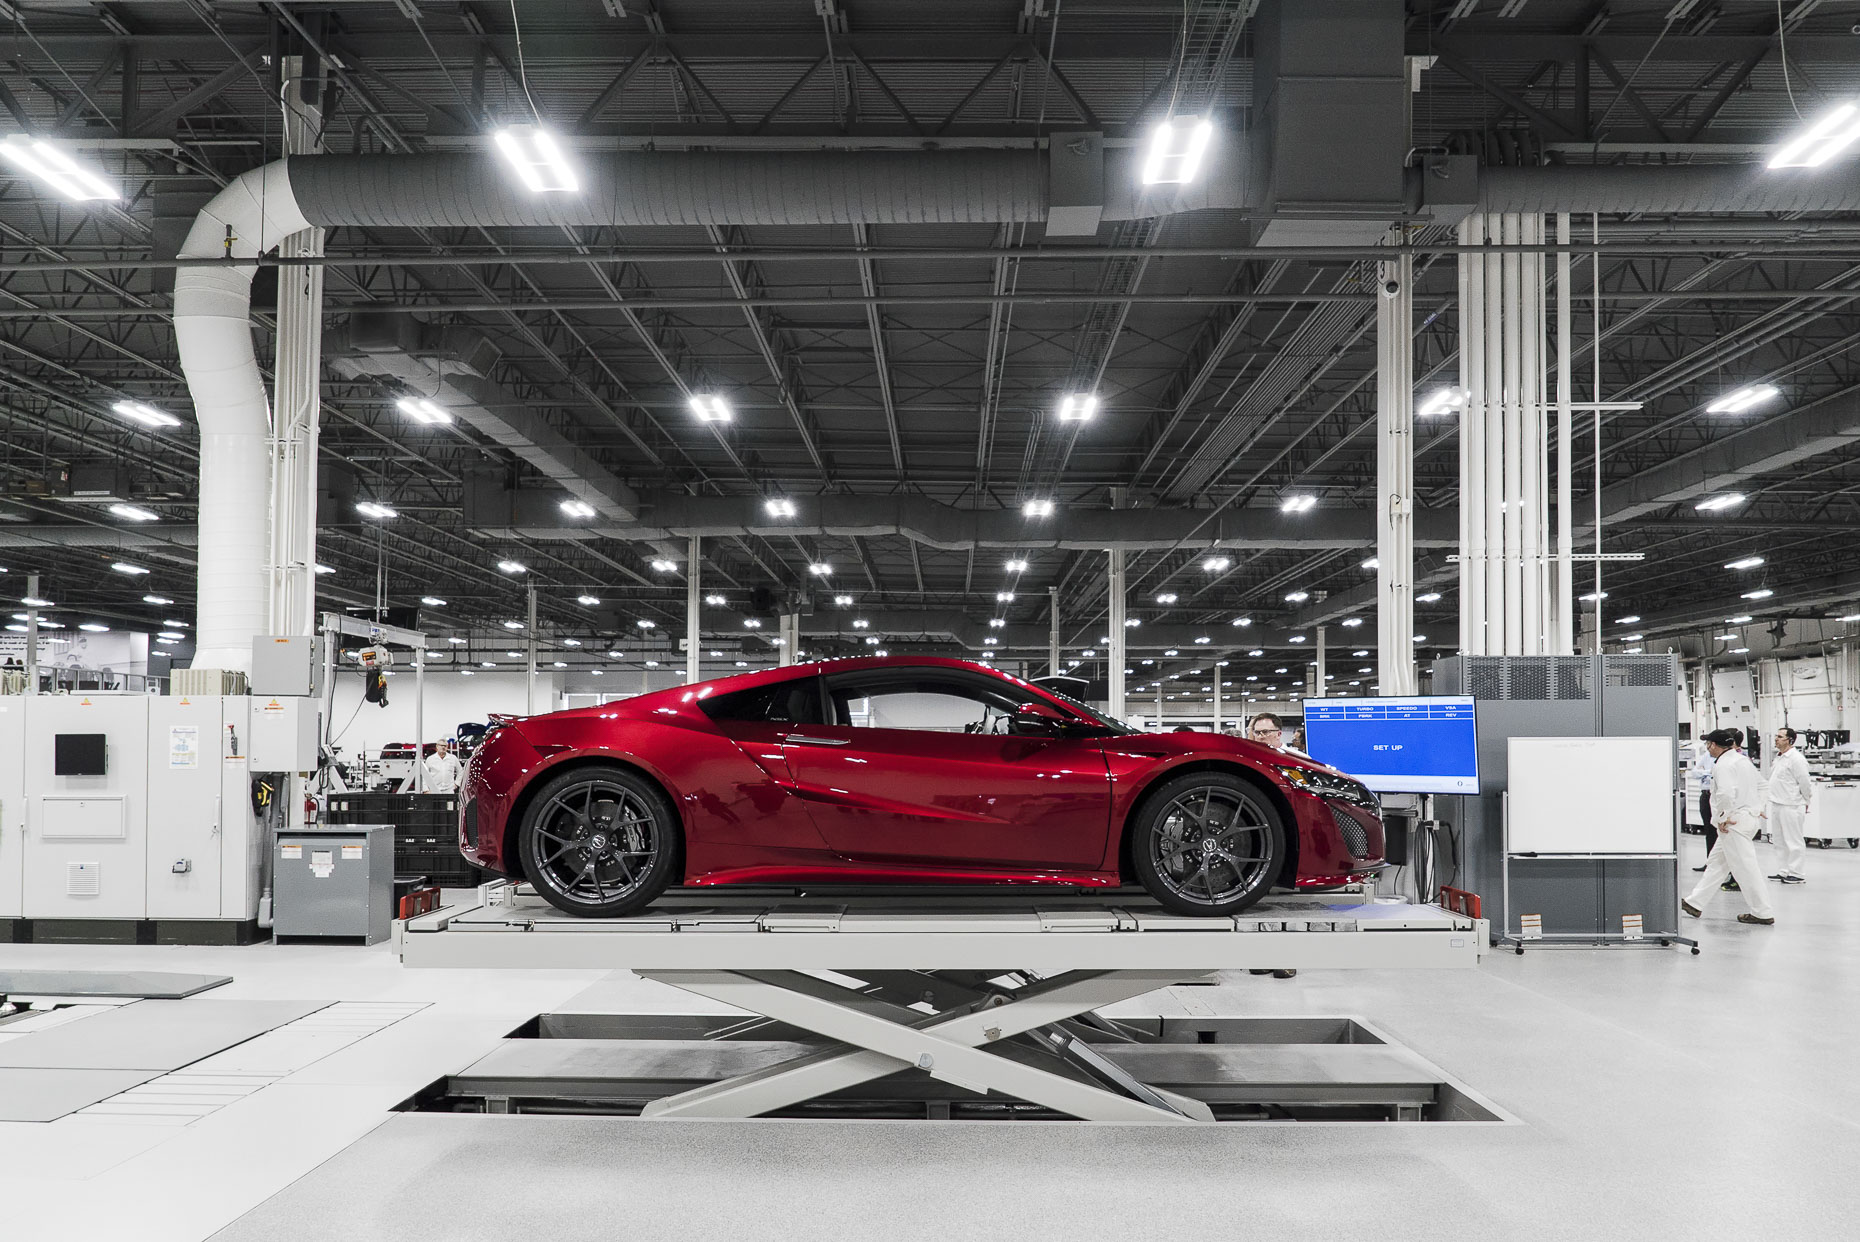 2017 Acura NSX for AUTOWeek photographed by Lauren K Davis based in Columbus, Ohio